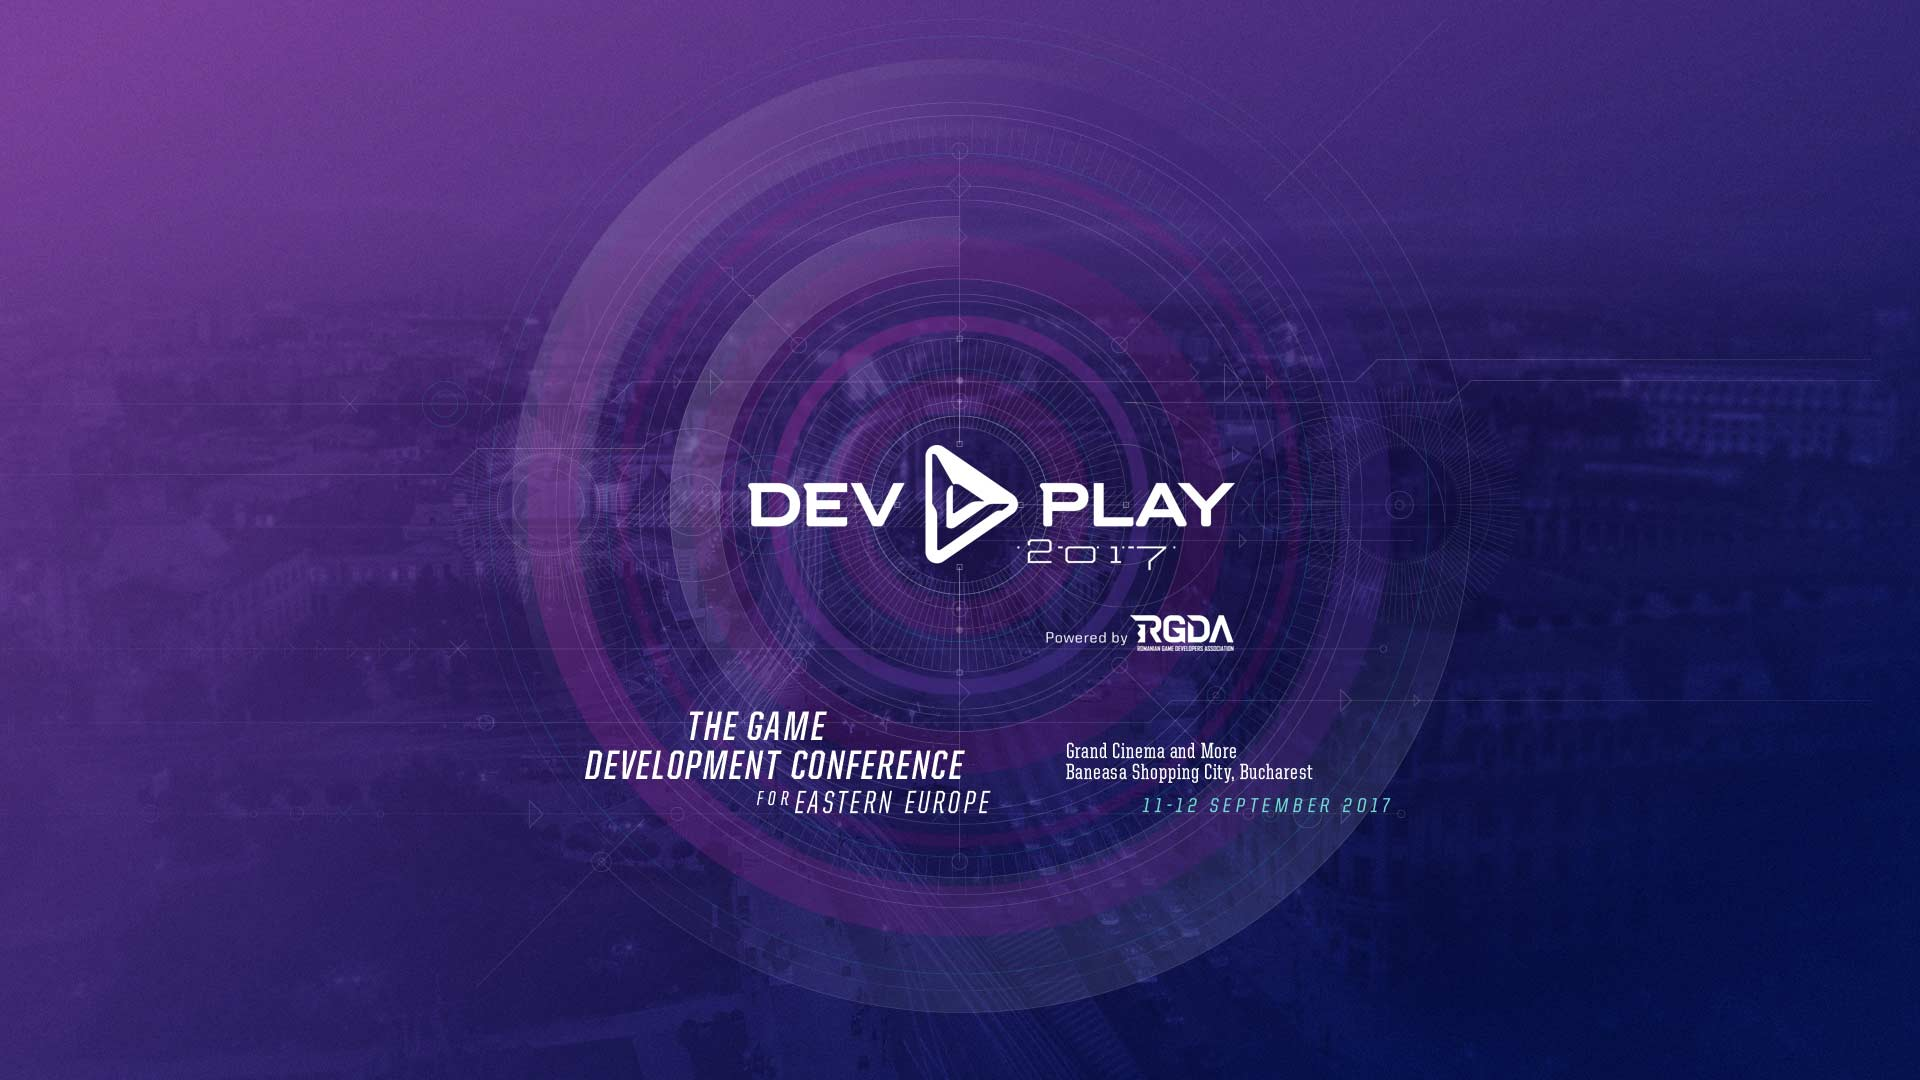 Stepping up the branding game for Dev.Play